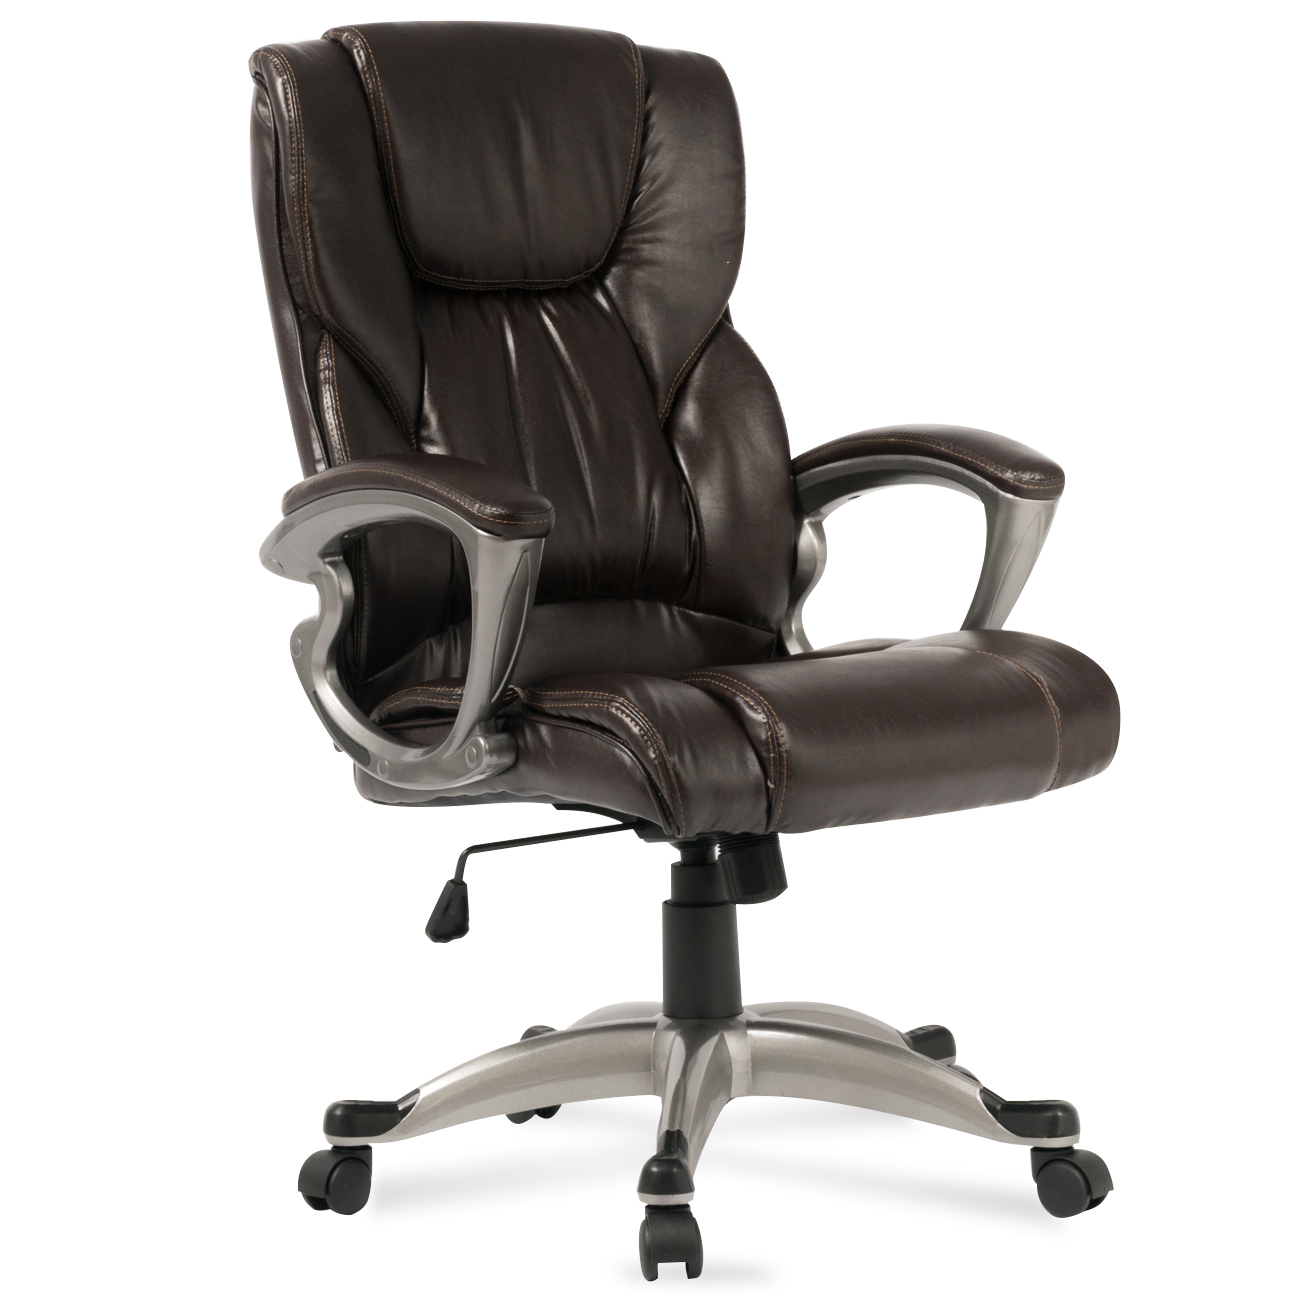 Executive Office Chair High-Back Task Ergonomic Computer ...